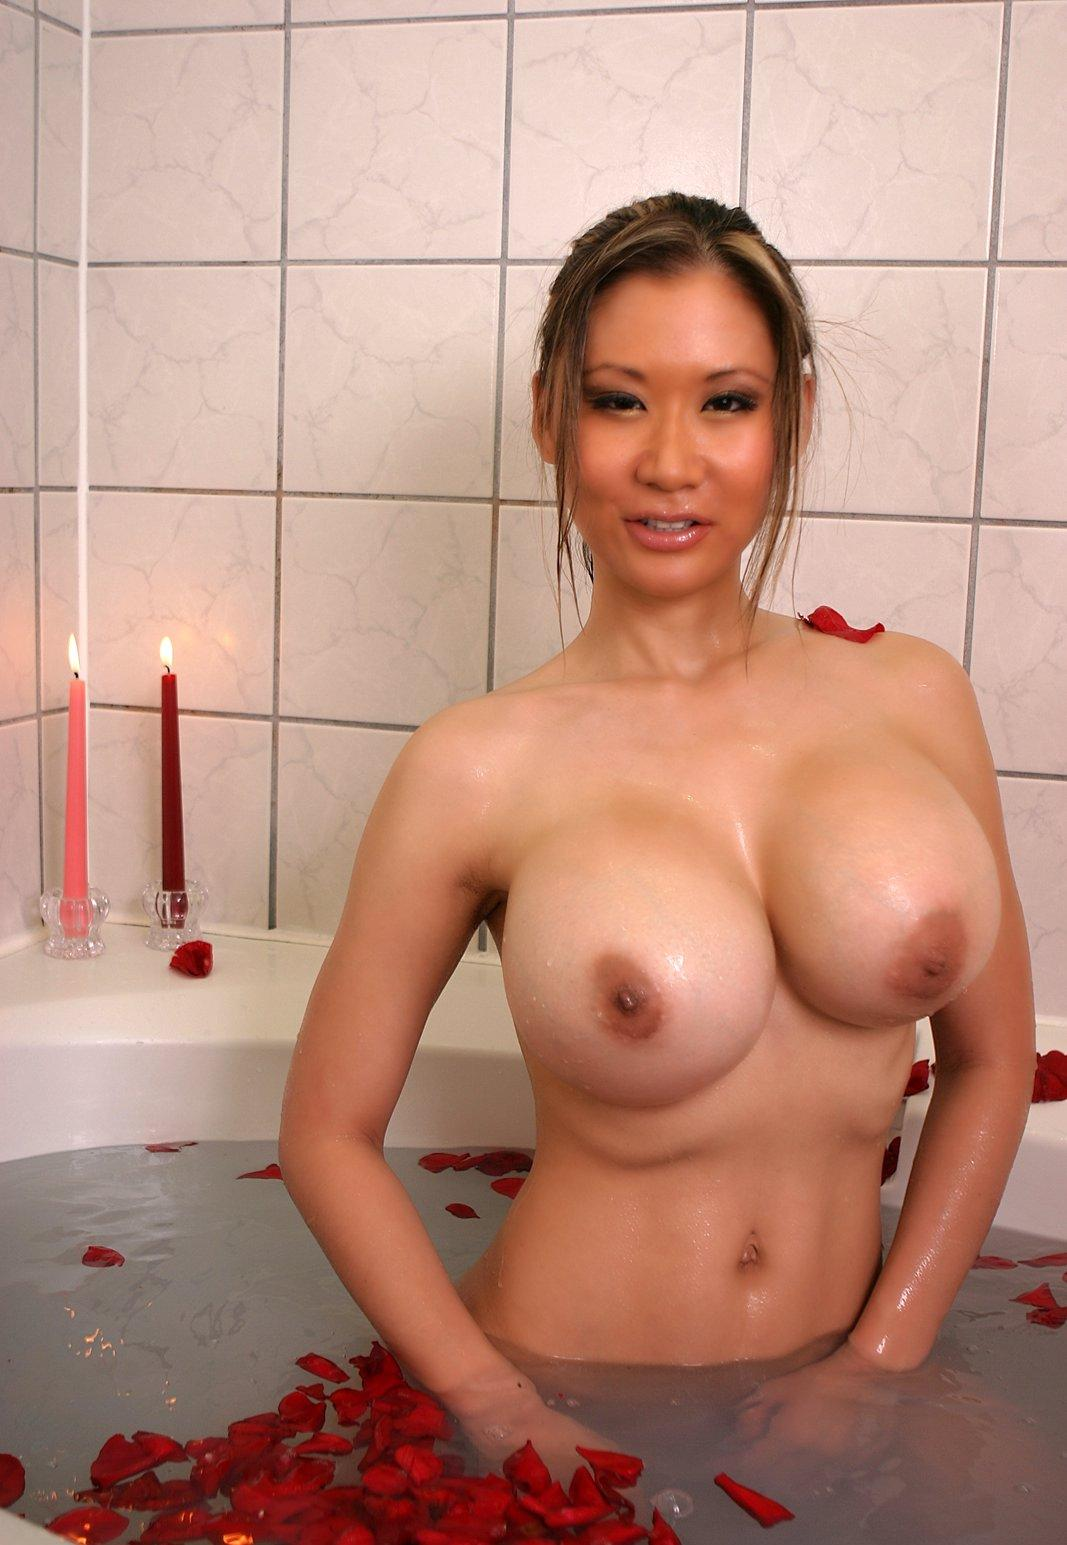 Busty singaporean banker nude pussy pics 579